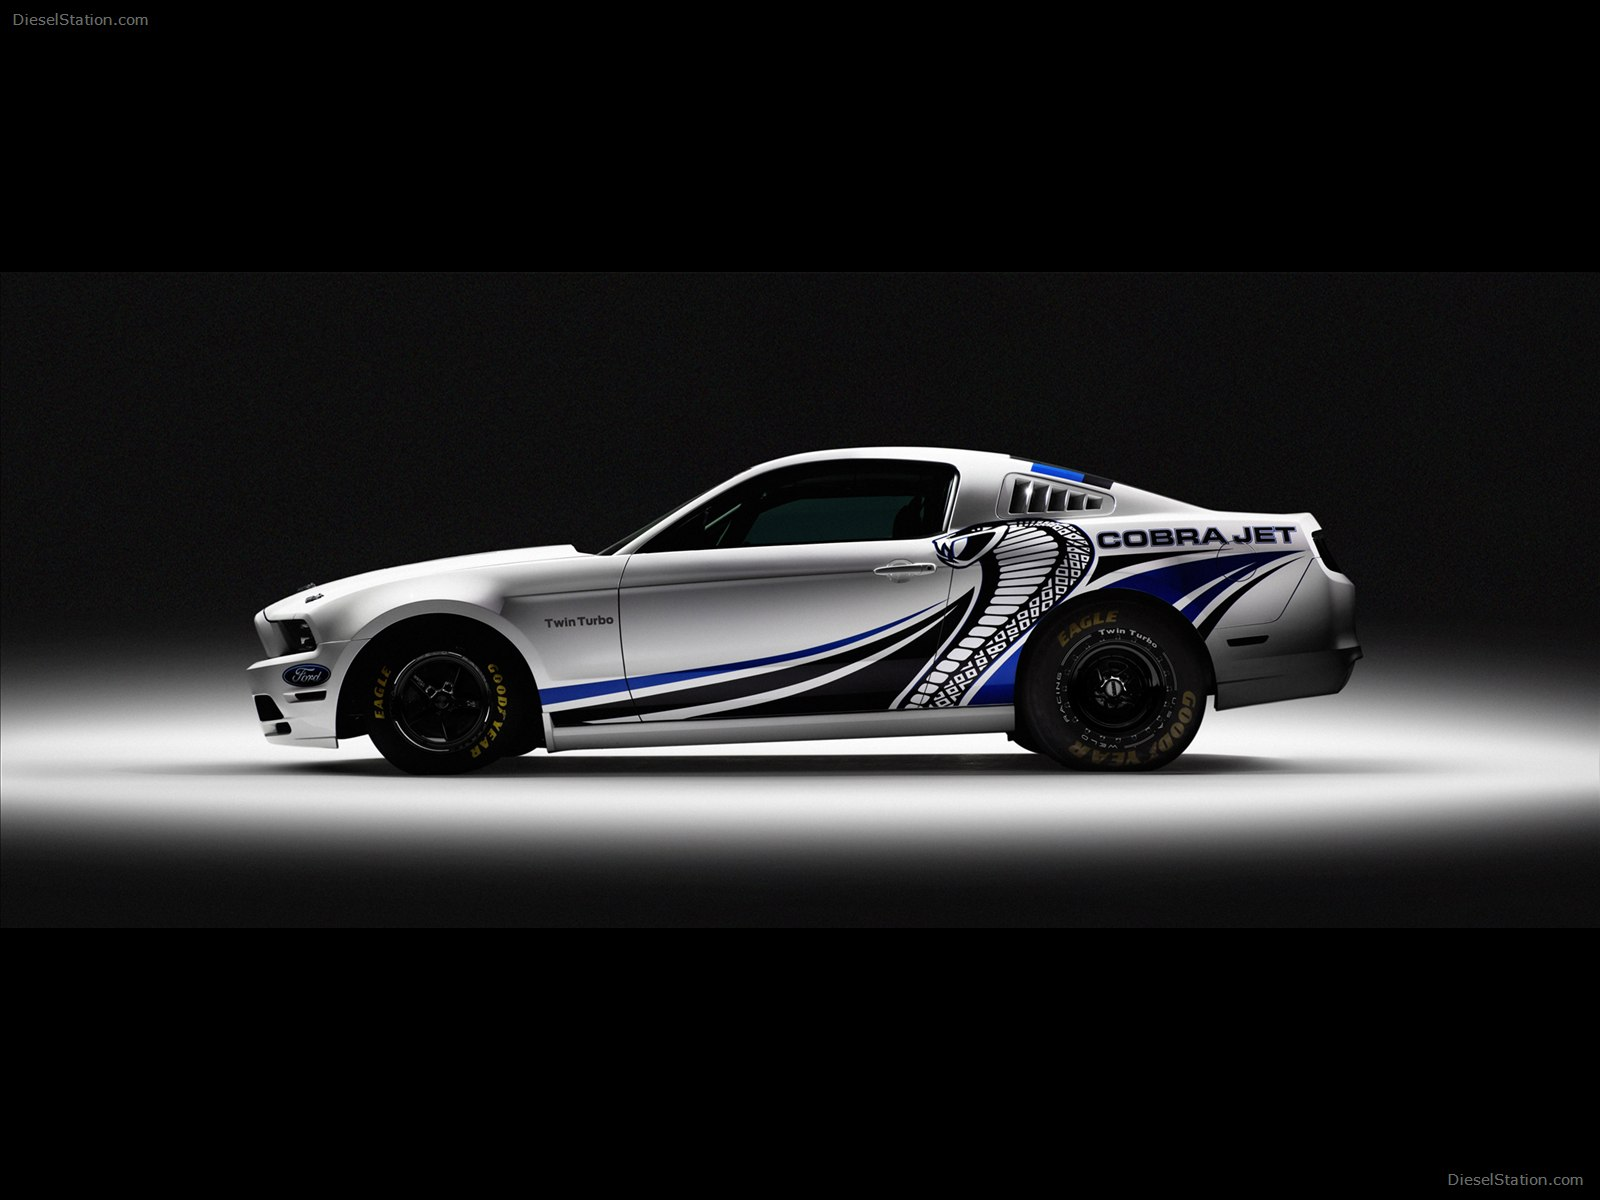 2012 Ford Mustang Cobra Jet Twin Turbo Concept photo - 3